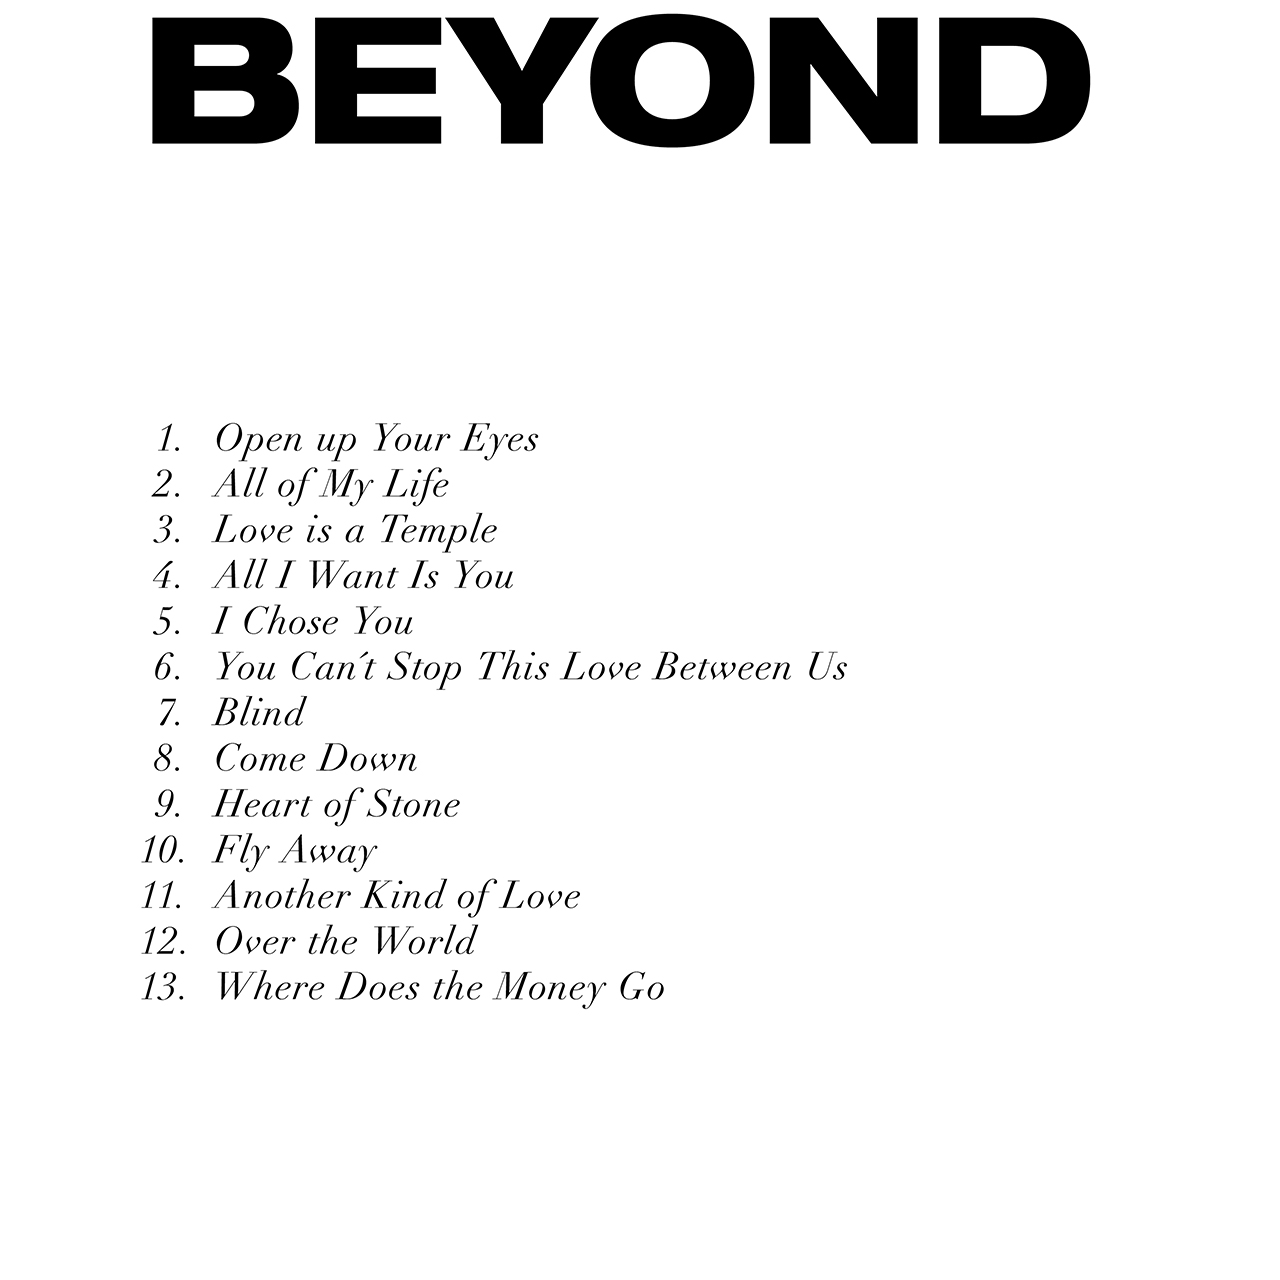 Beyond - tracce